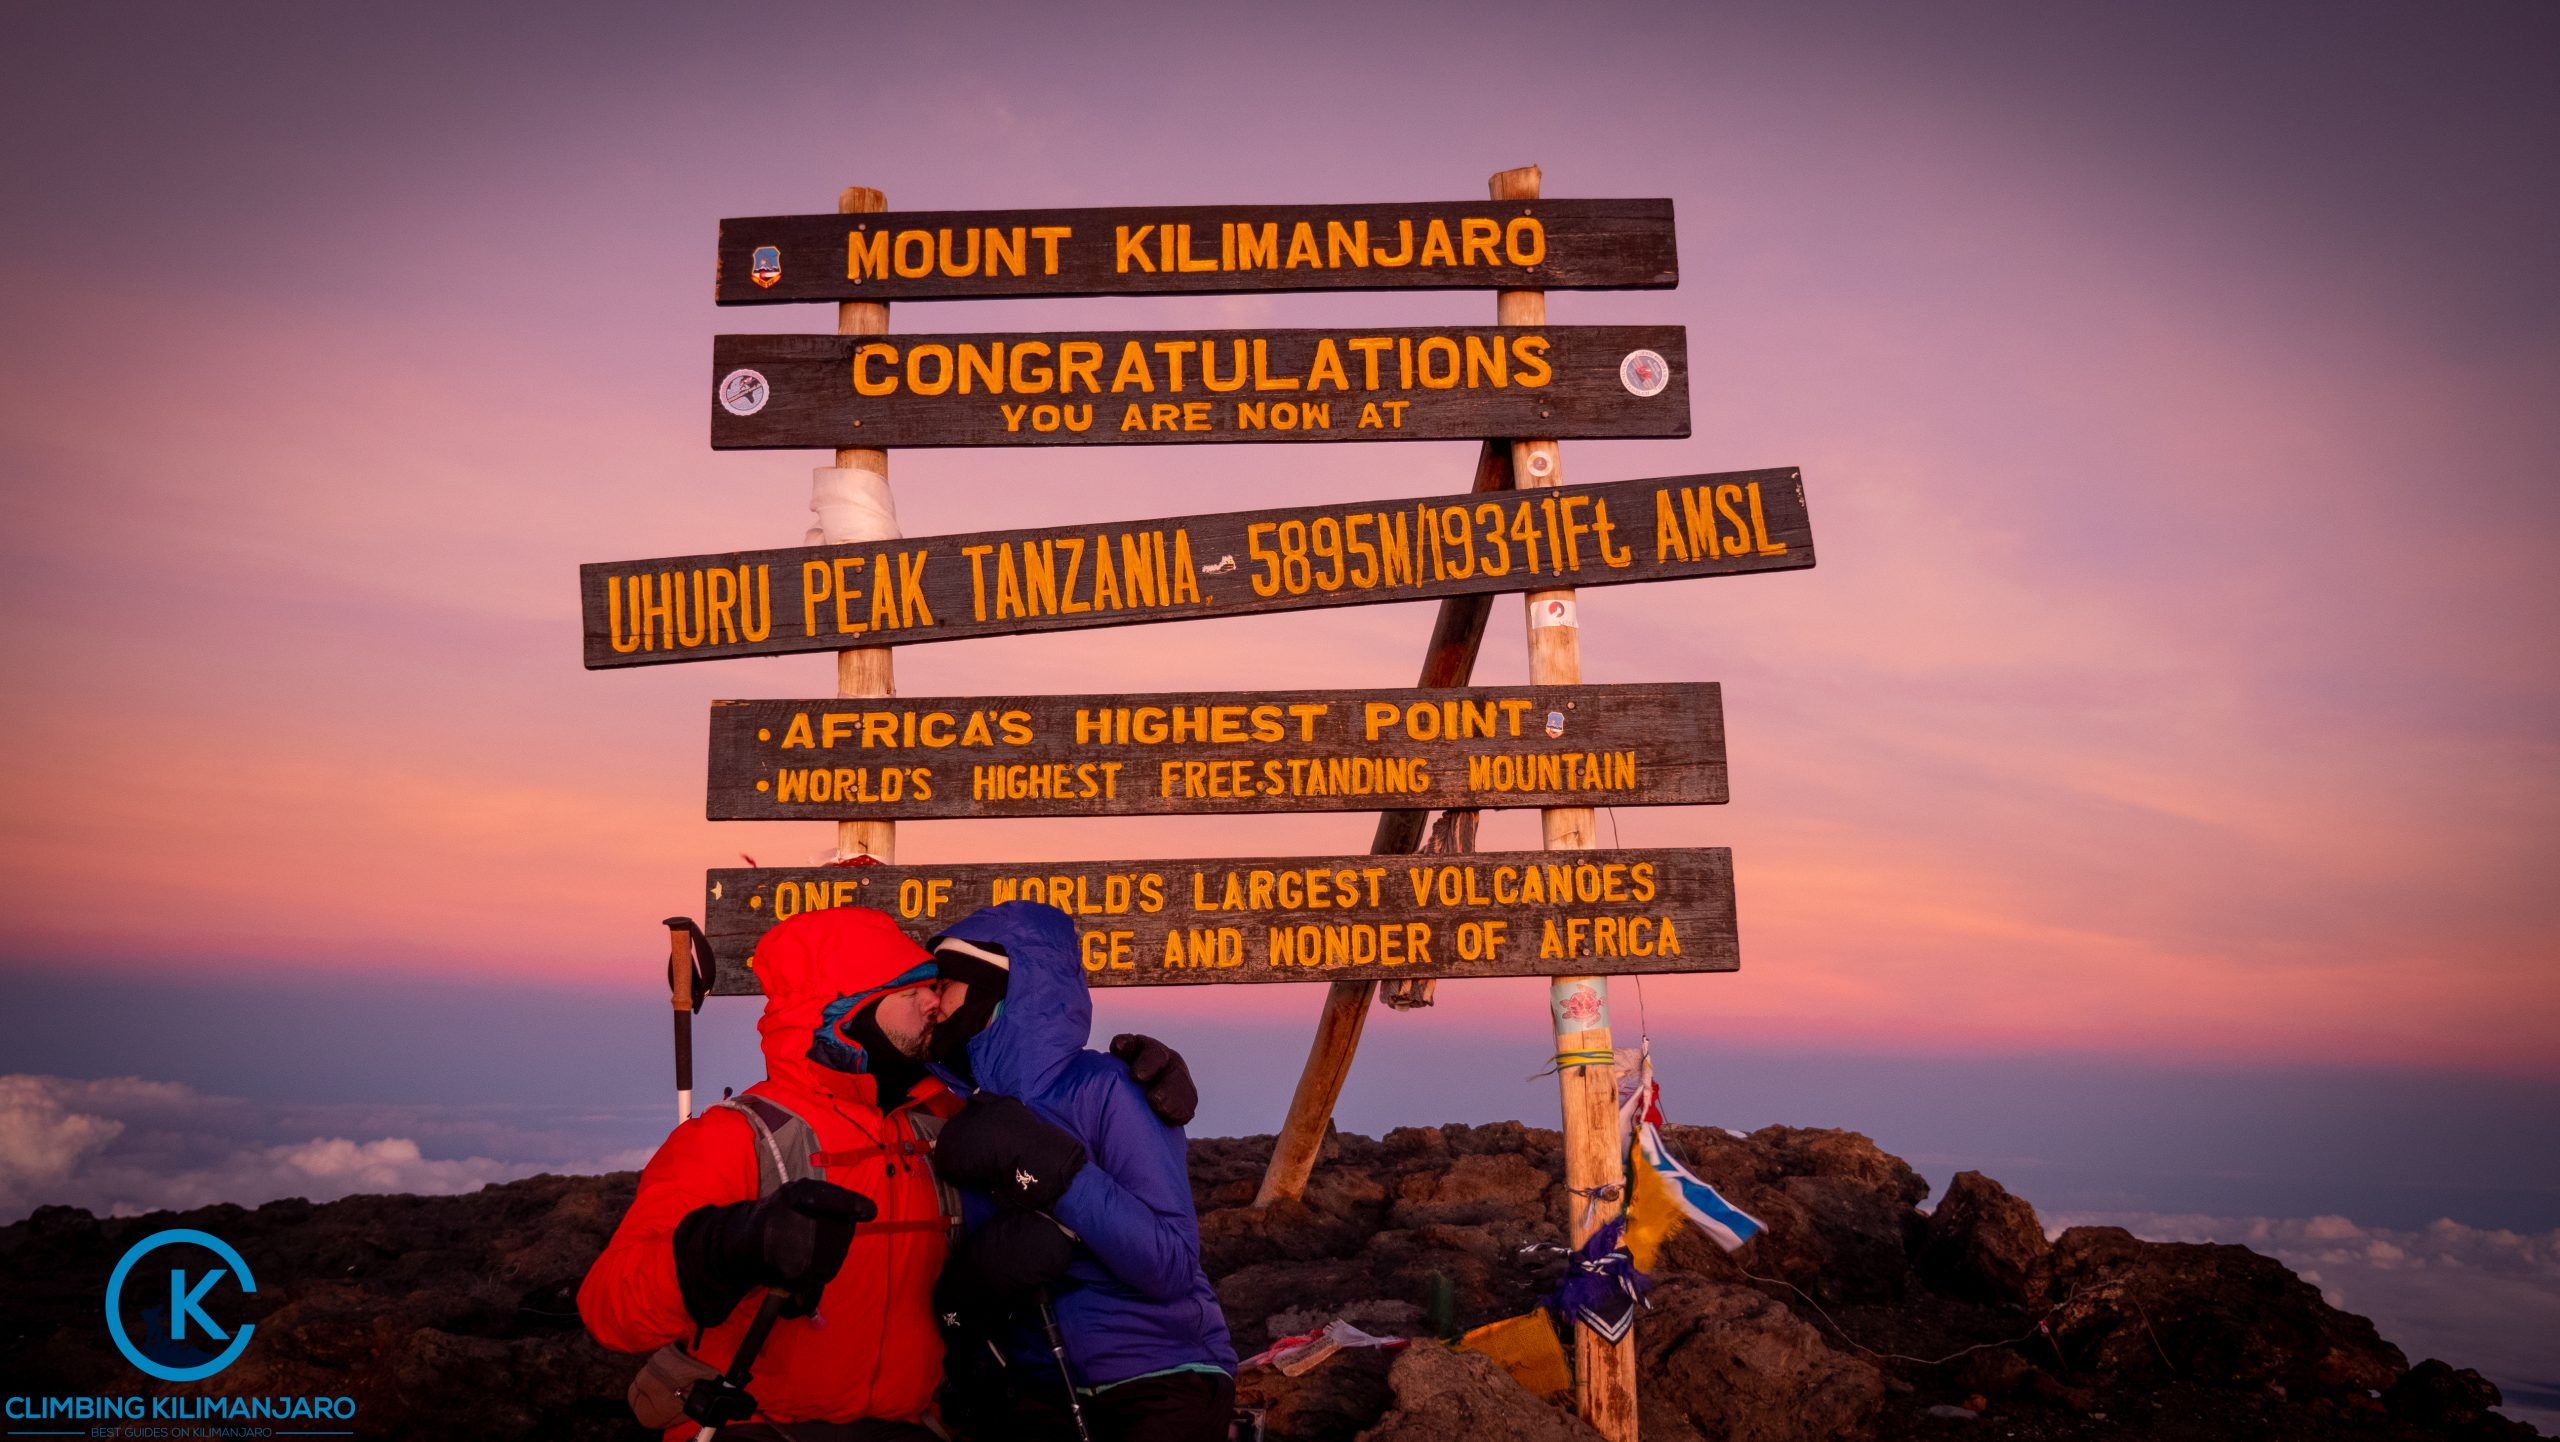 Is Climbing Kilimanjaro Worth It?